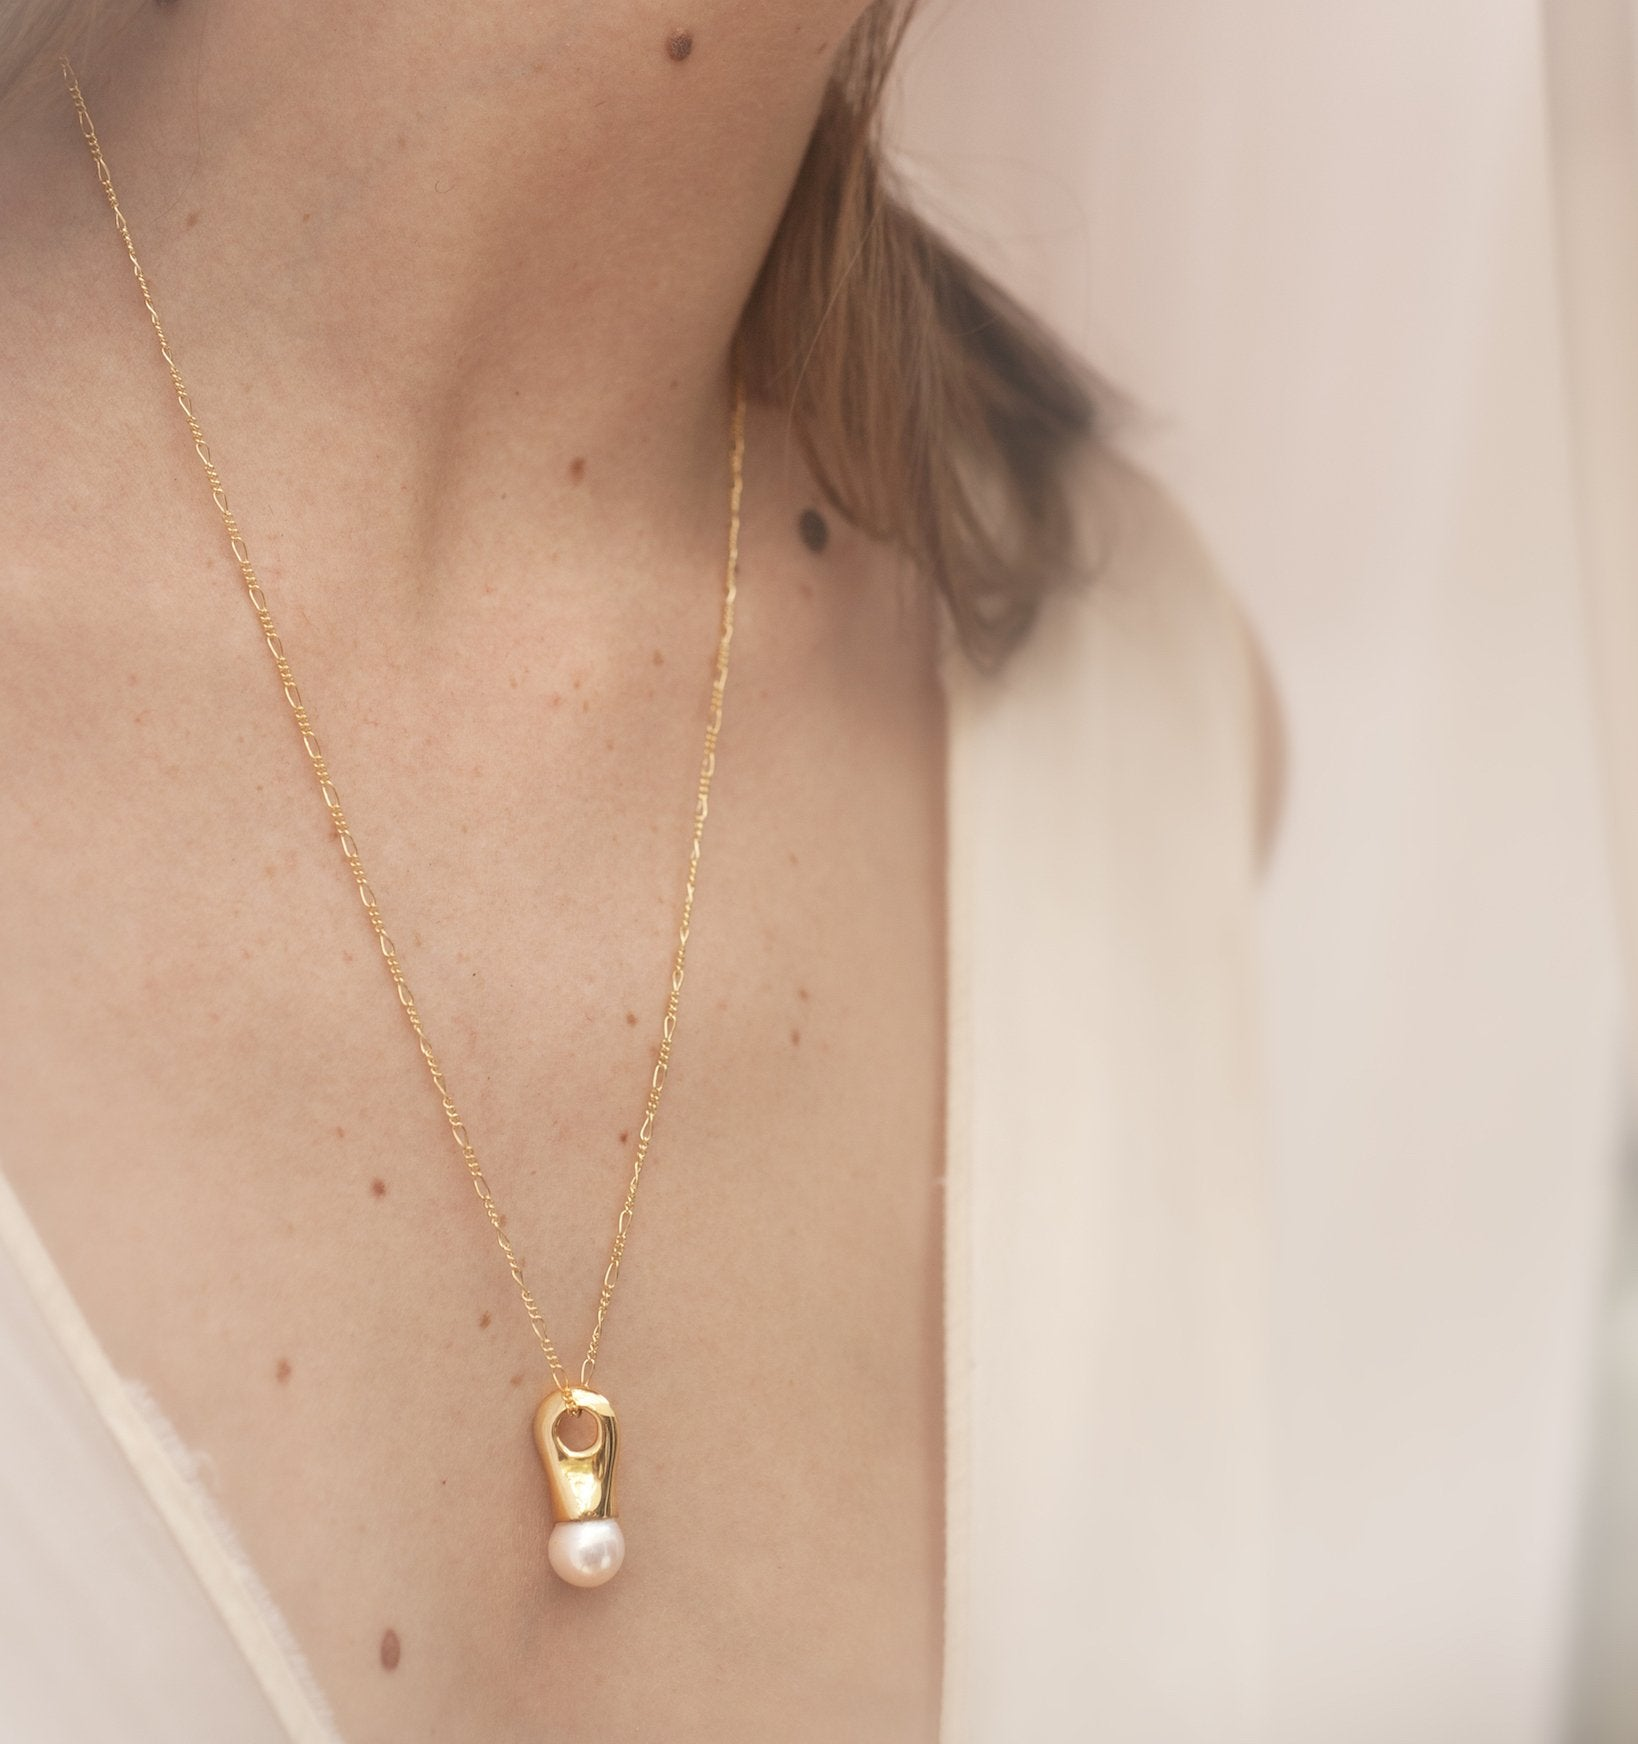 Fluid pearl drop pendant necklace